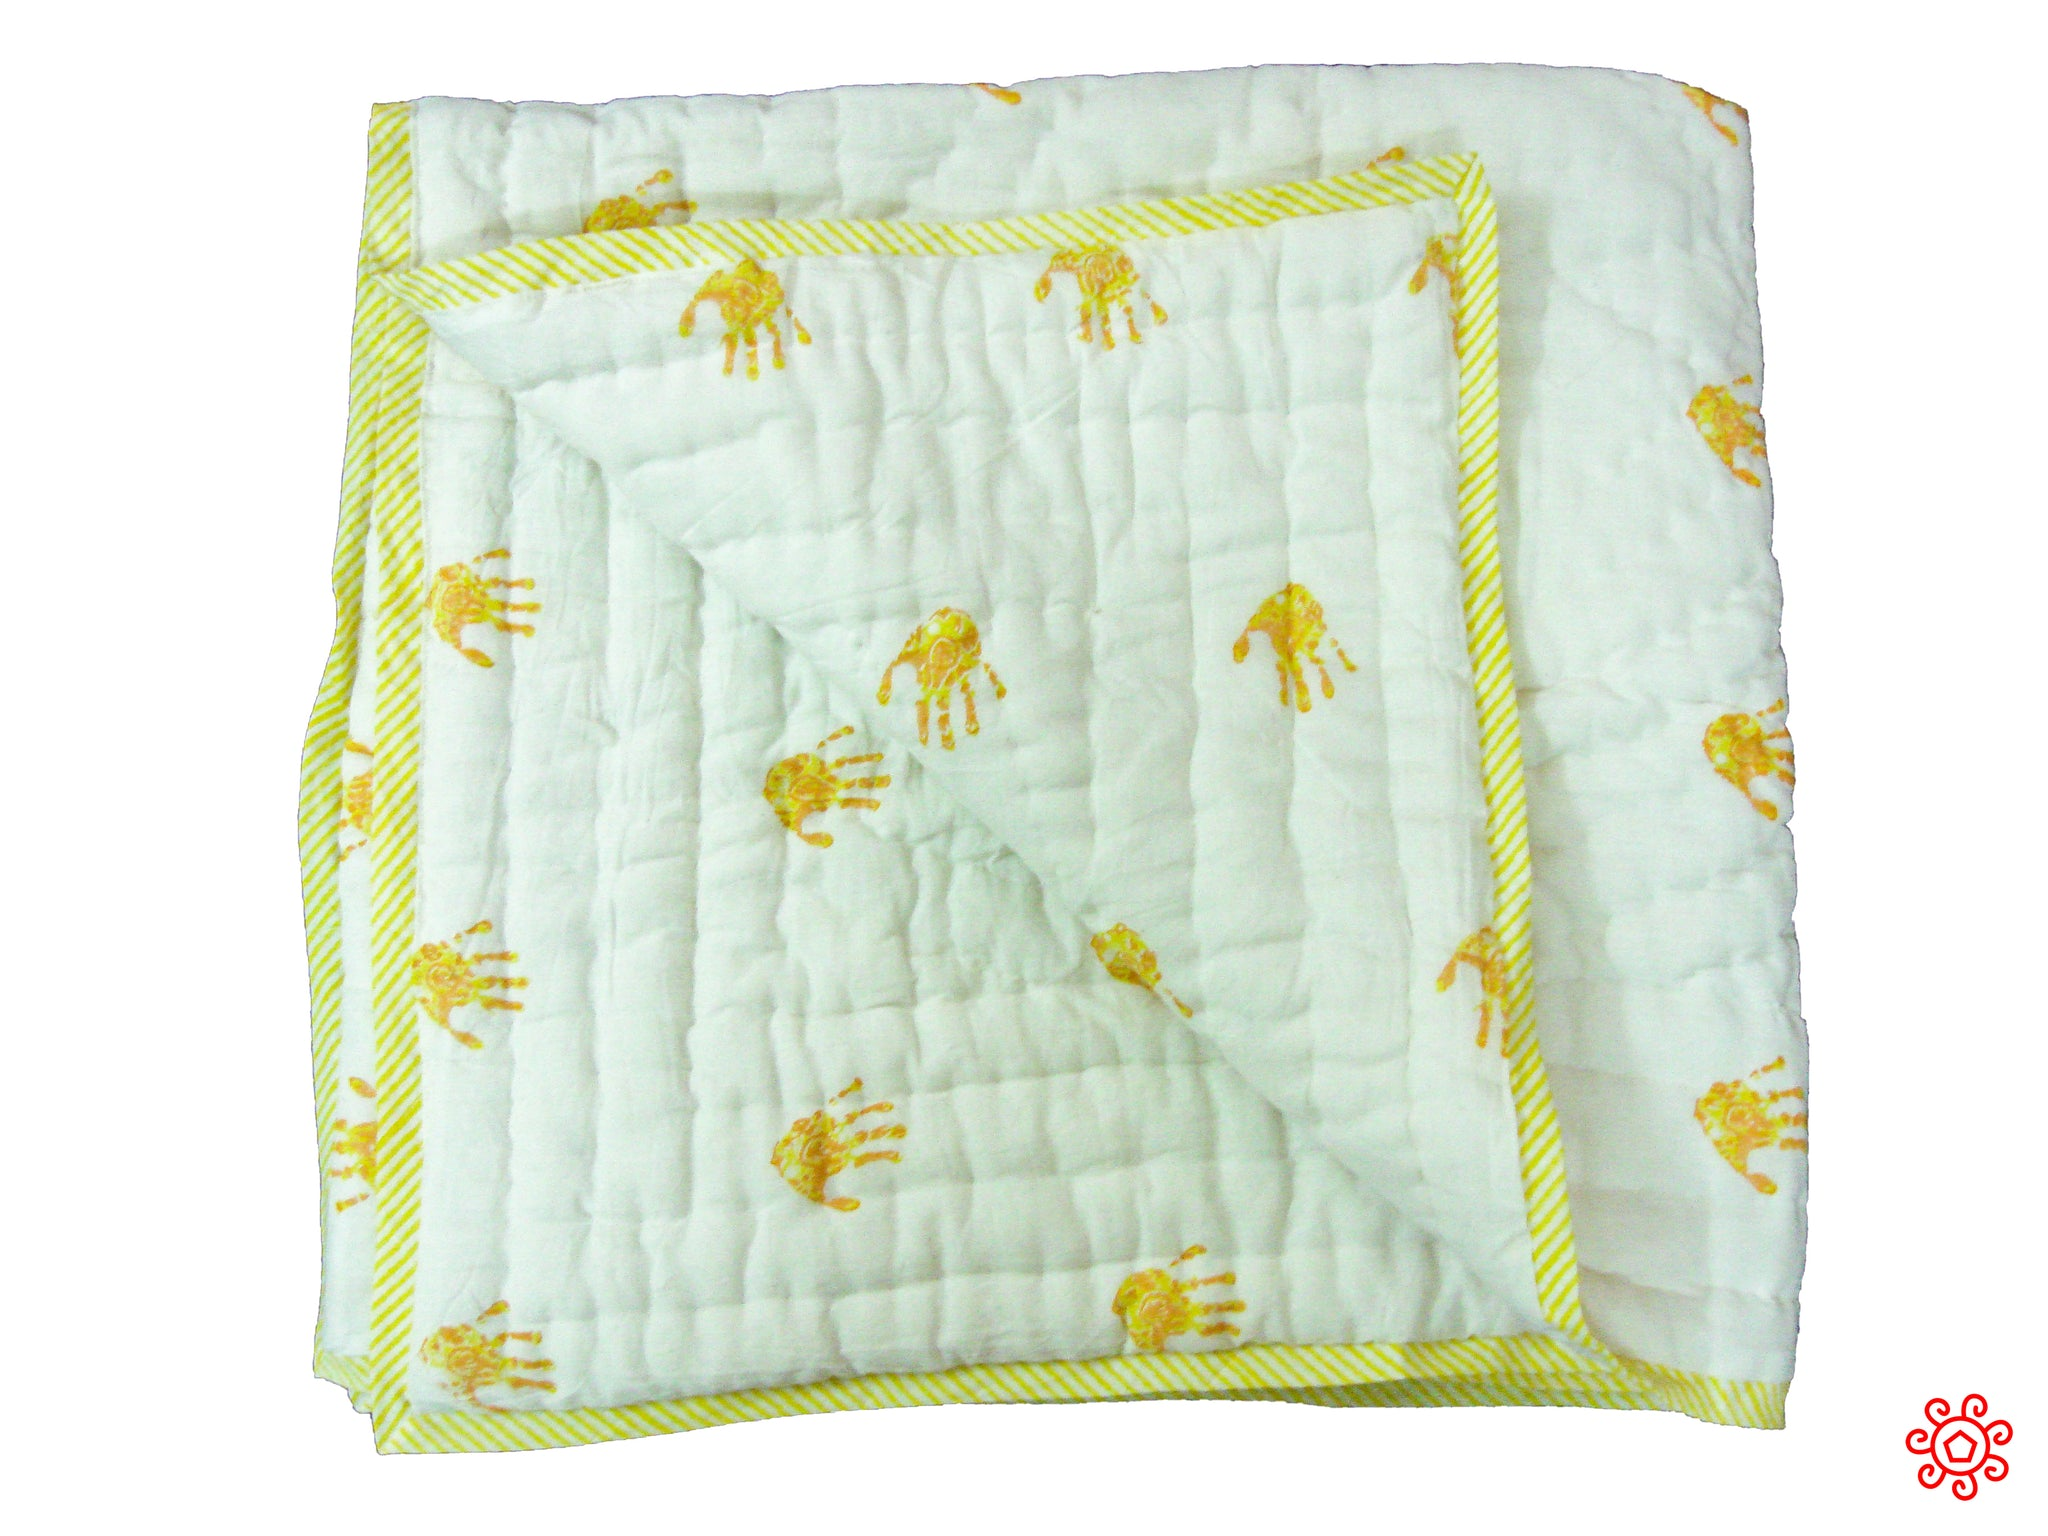 Handmade Block Printed Cotton Baby Quilt - Yellow Palm Prints